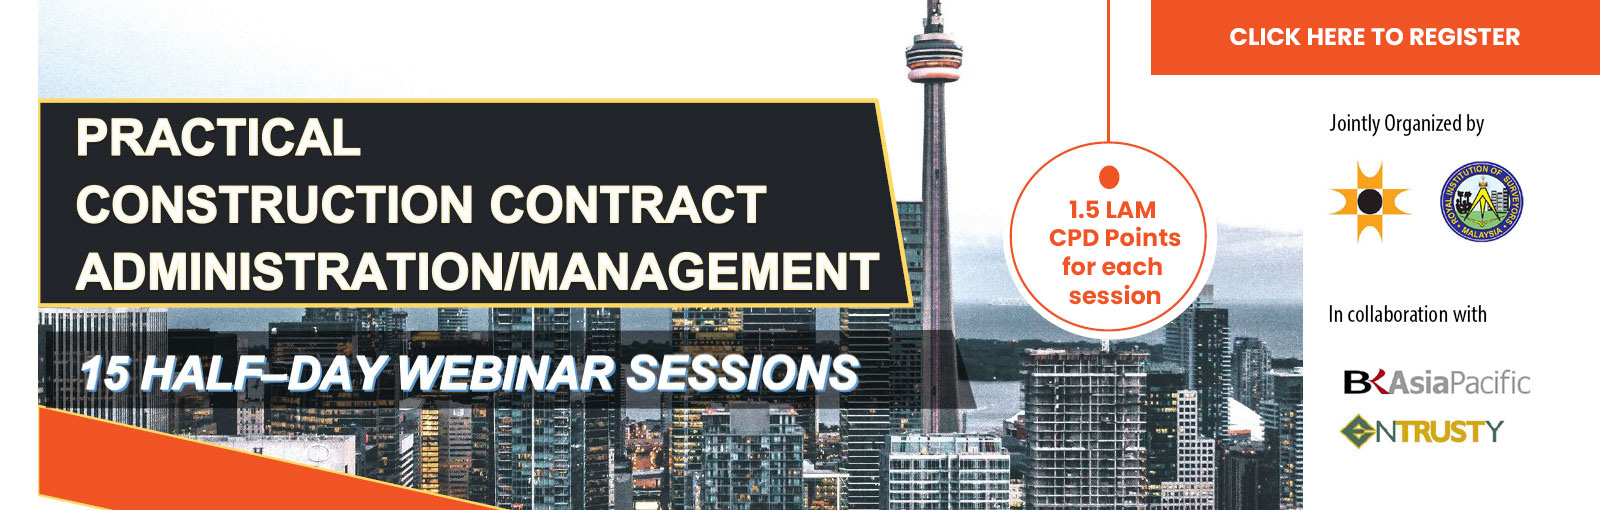 Webinar on Practical Construction Contract Administration Training 2020